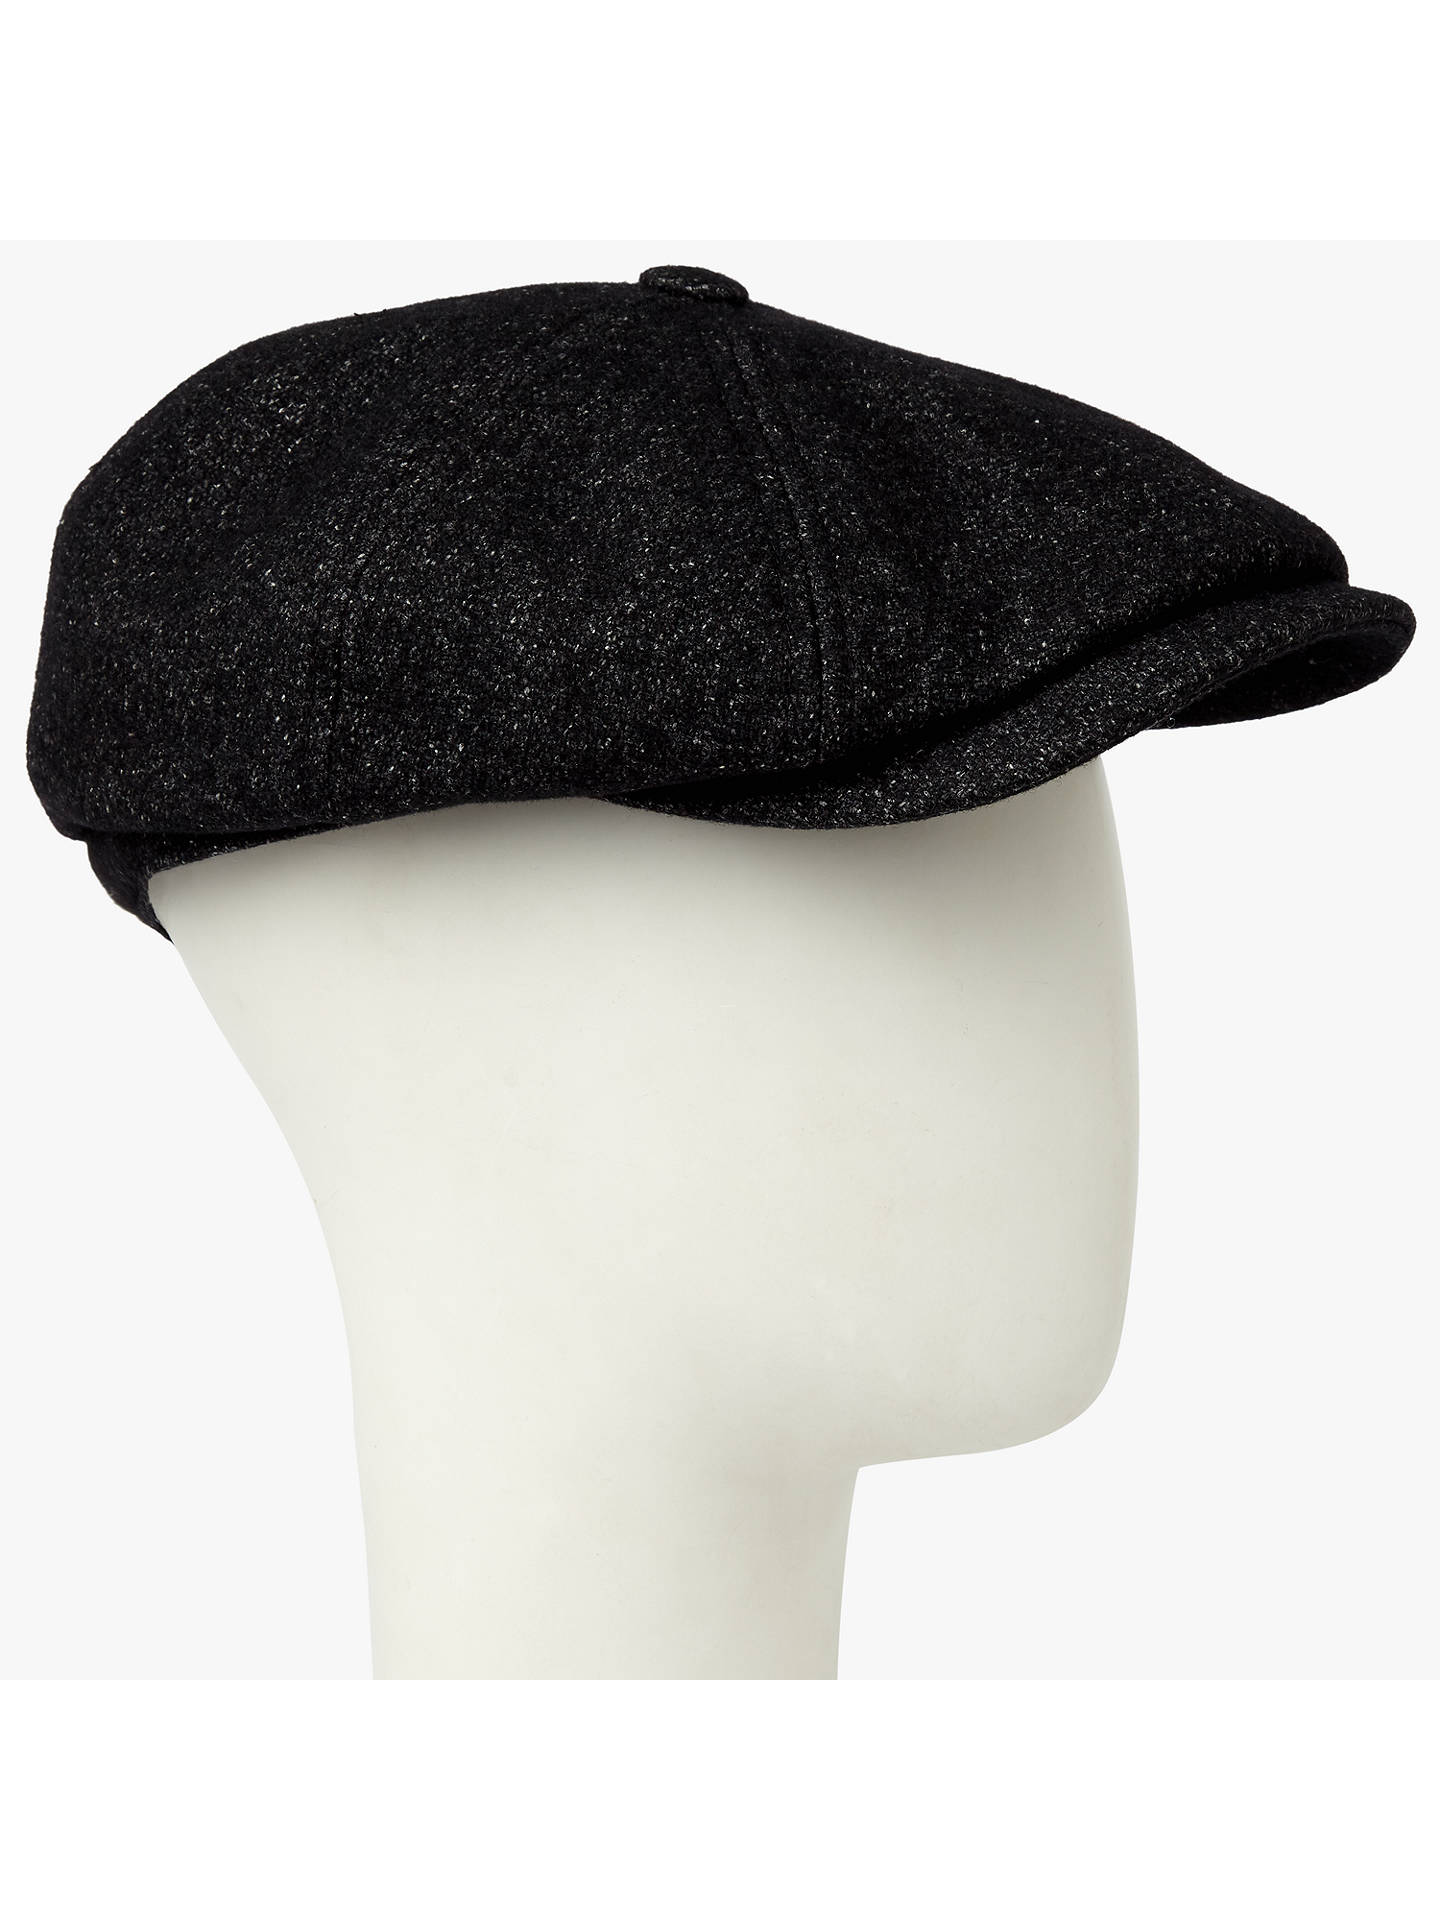 fc9f1d59044 Ted Baker Gladstn Wool Blend Baker Boy Cap at John Lewis   Partners